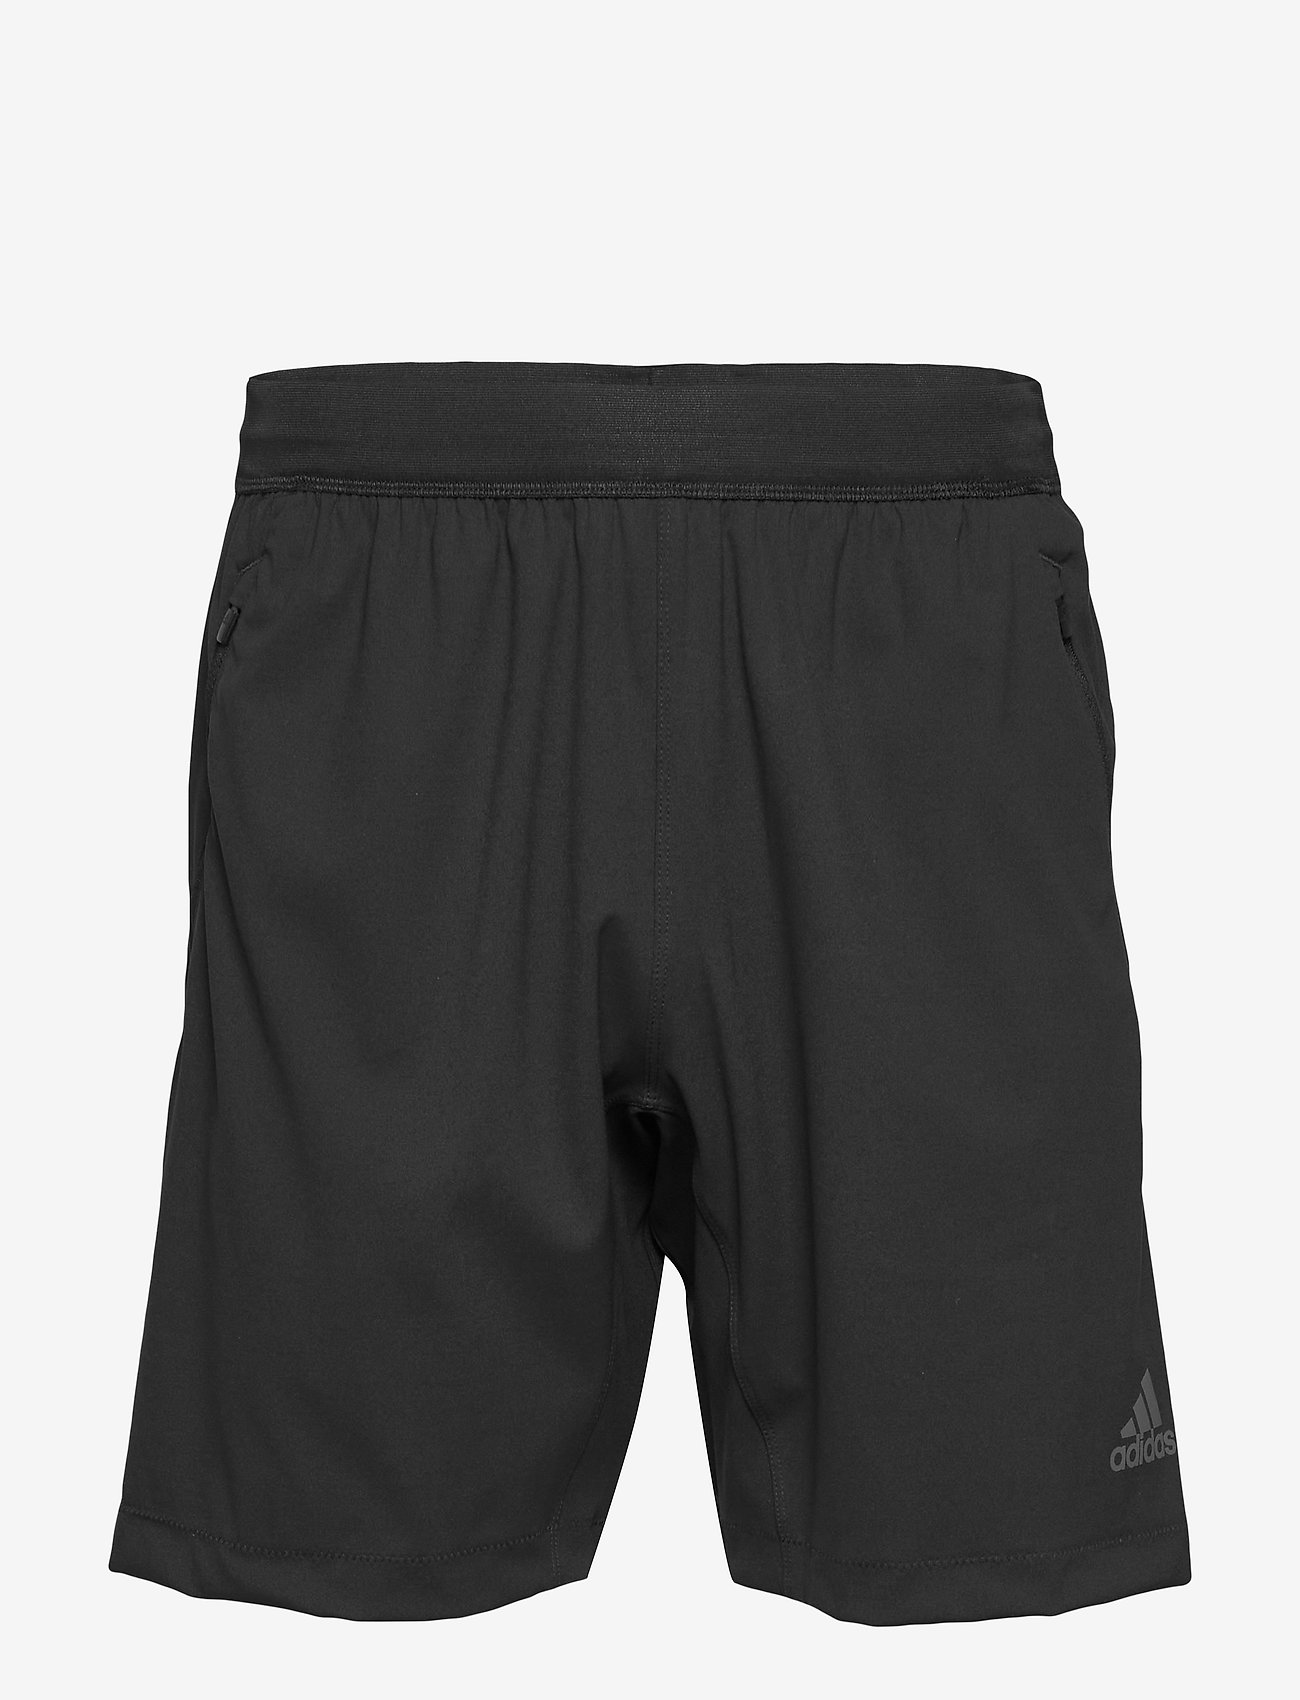 Trg Short H.rdy (Black) - adidas Performance wJ3fw3